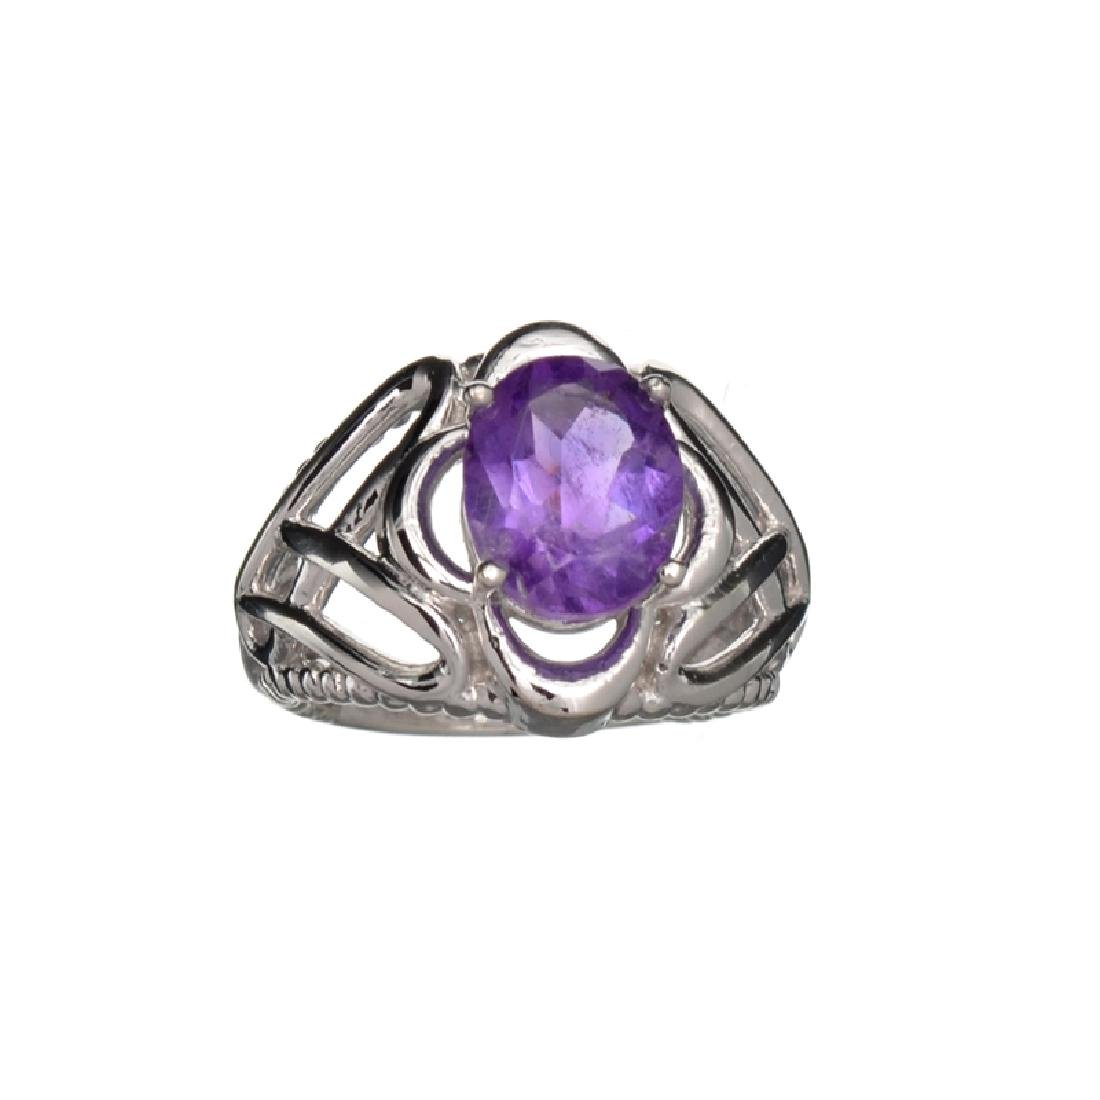 APP: 0.5k Fine Jewelry 2.40CT Oval Cut Purple Amethyst